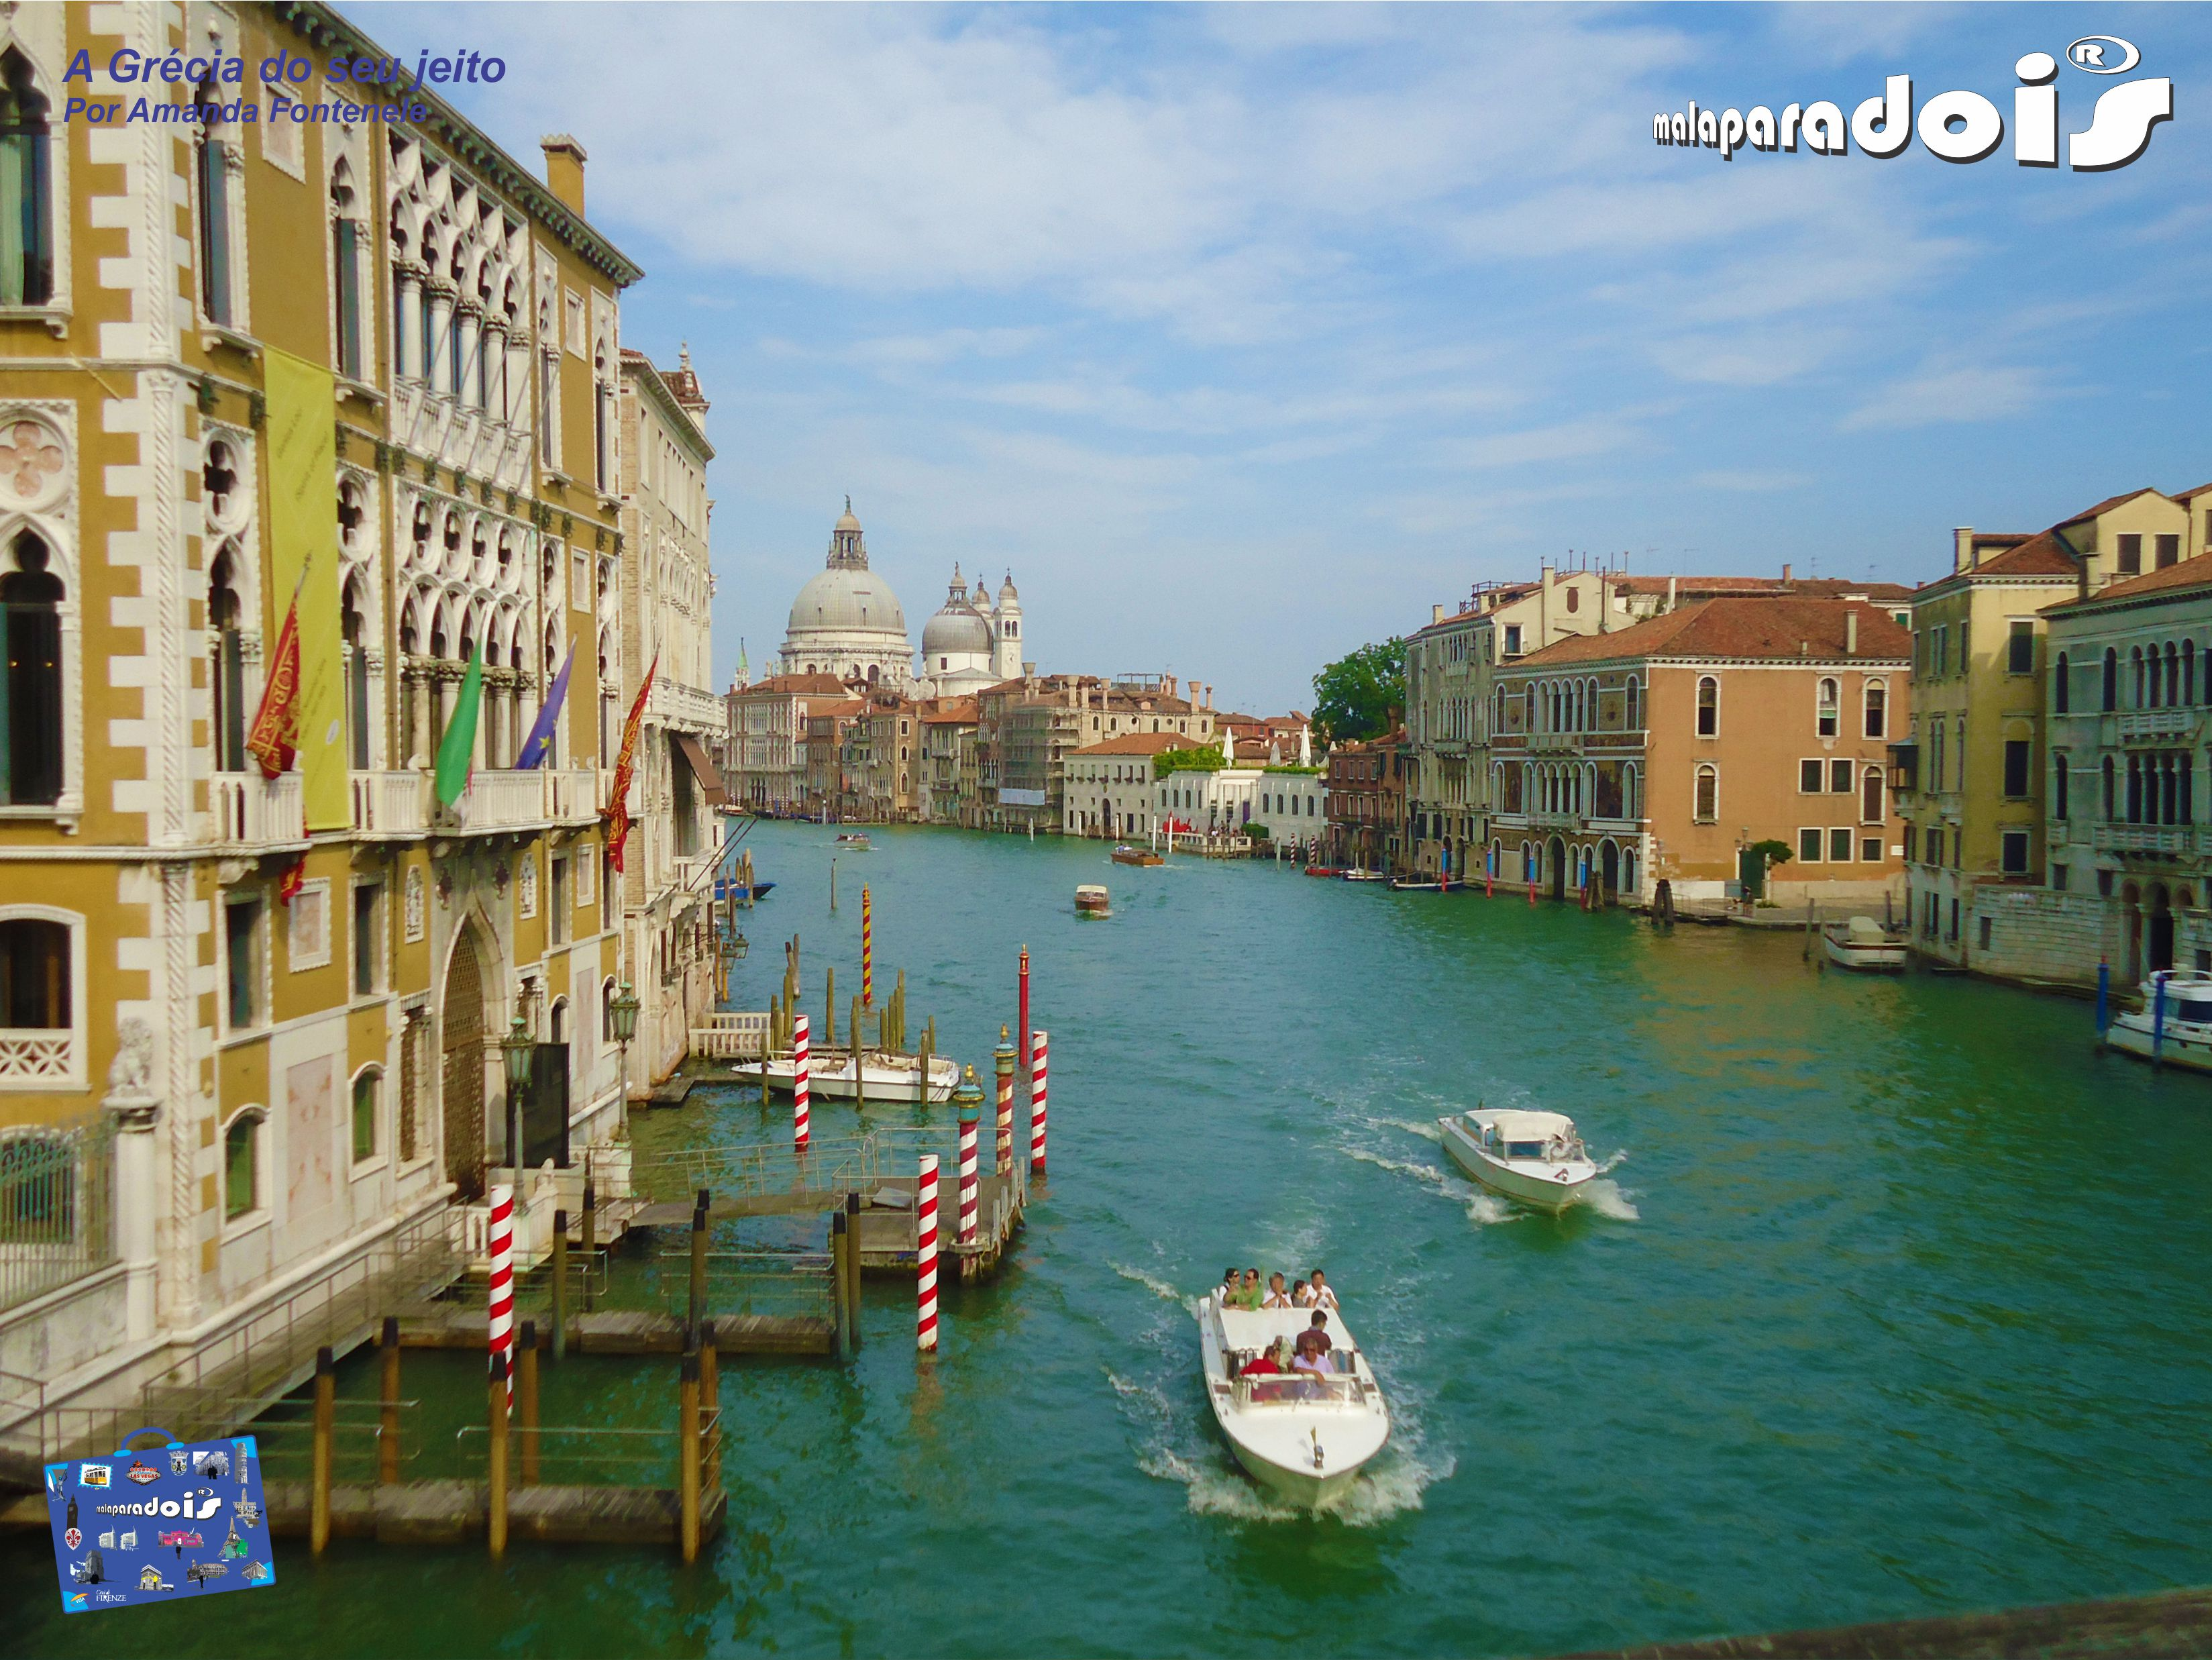 Grand Canale